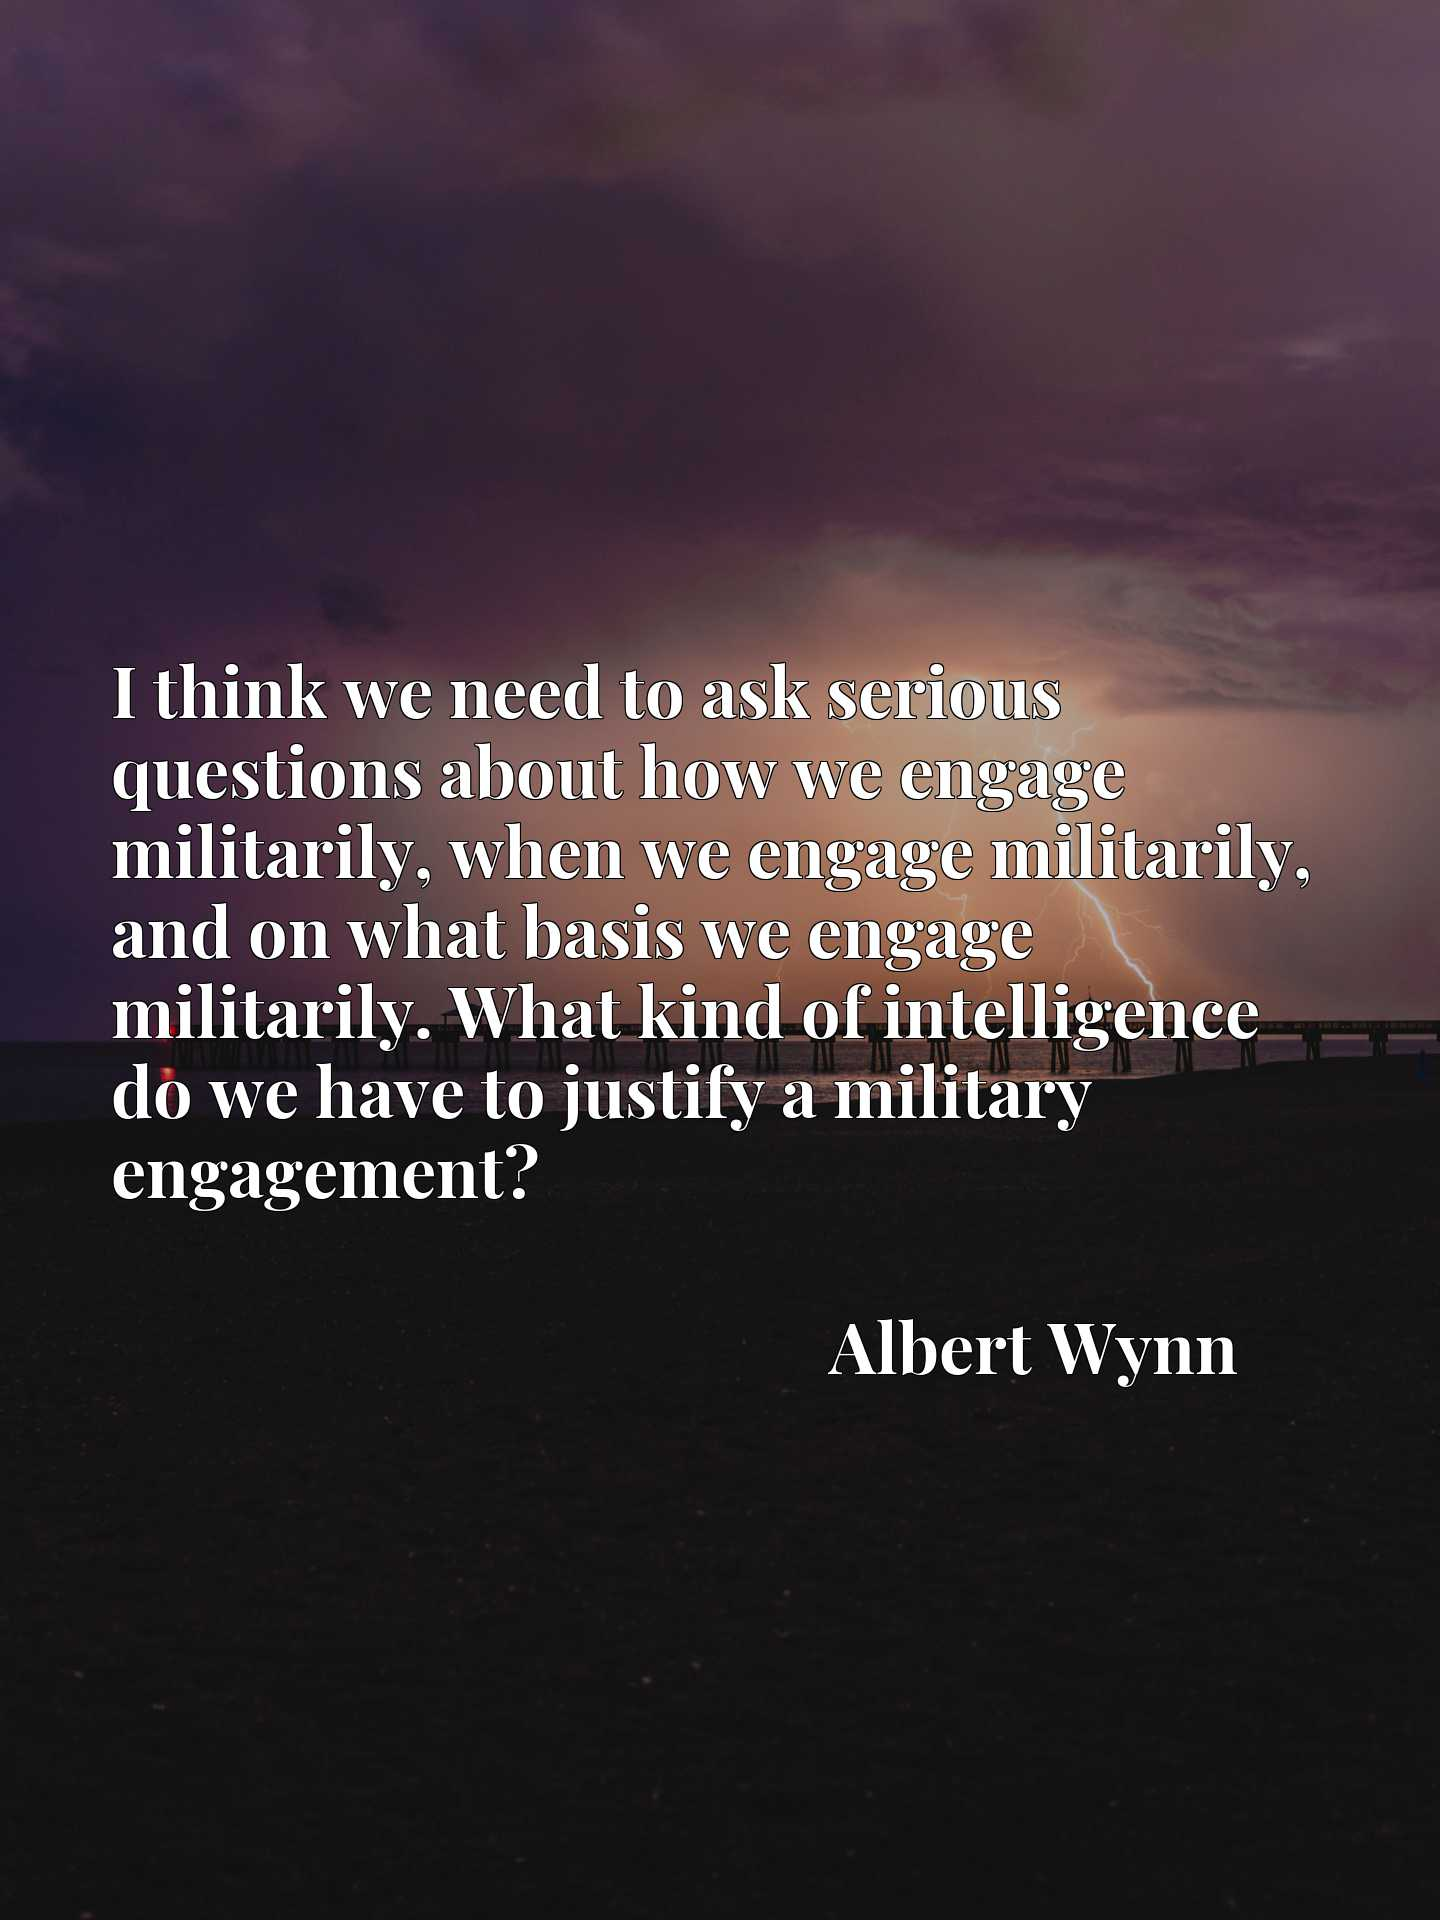 I think we need to ask serious questions about how we engage militarily, when we engage militarily, and on what basis we engage militarily. What kind of intelligence do we have to justify a military engagement?